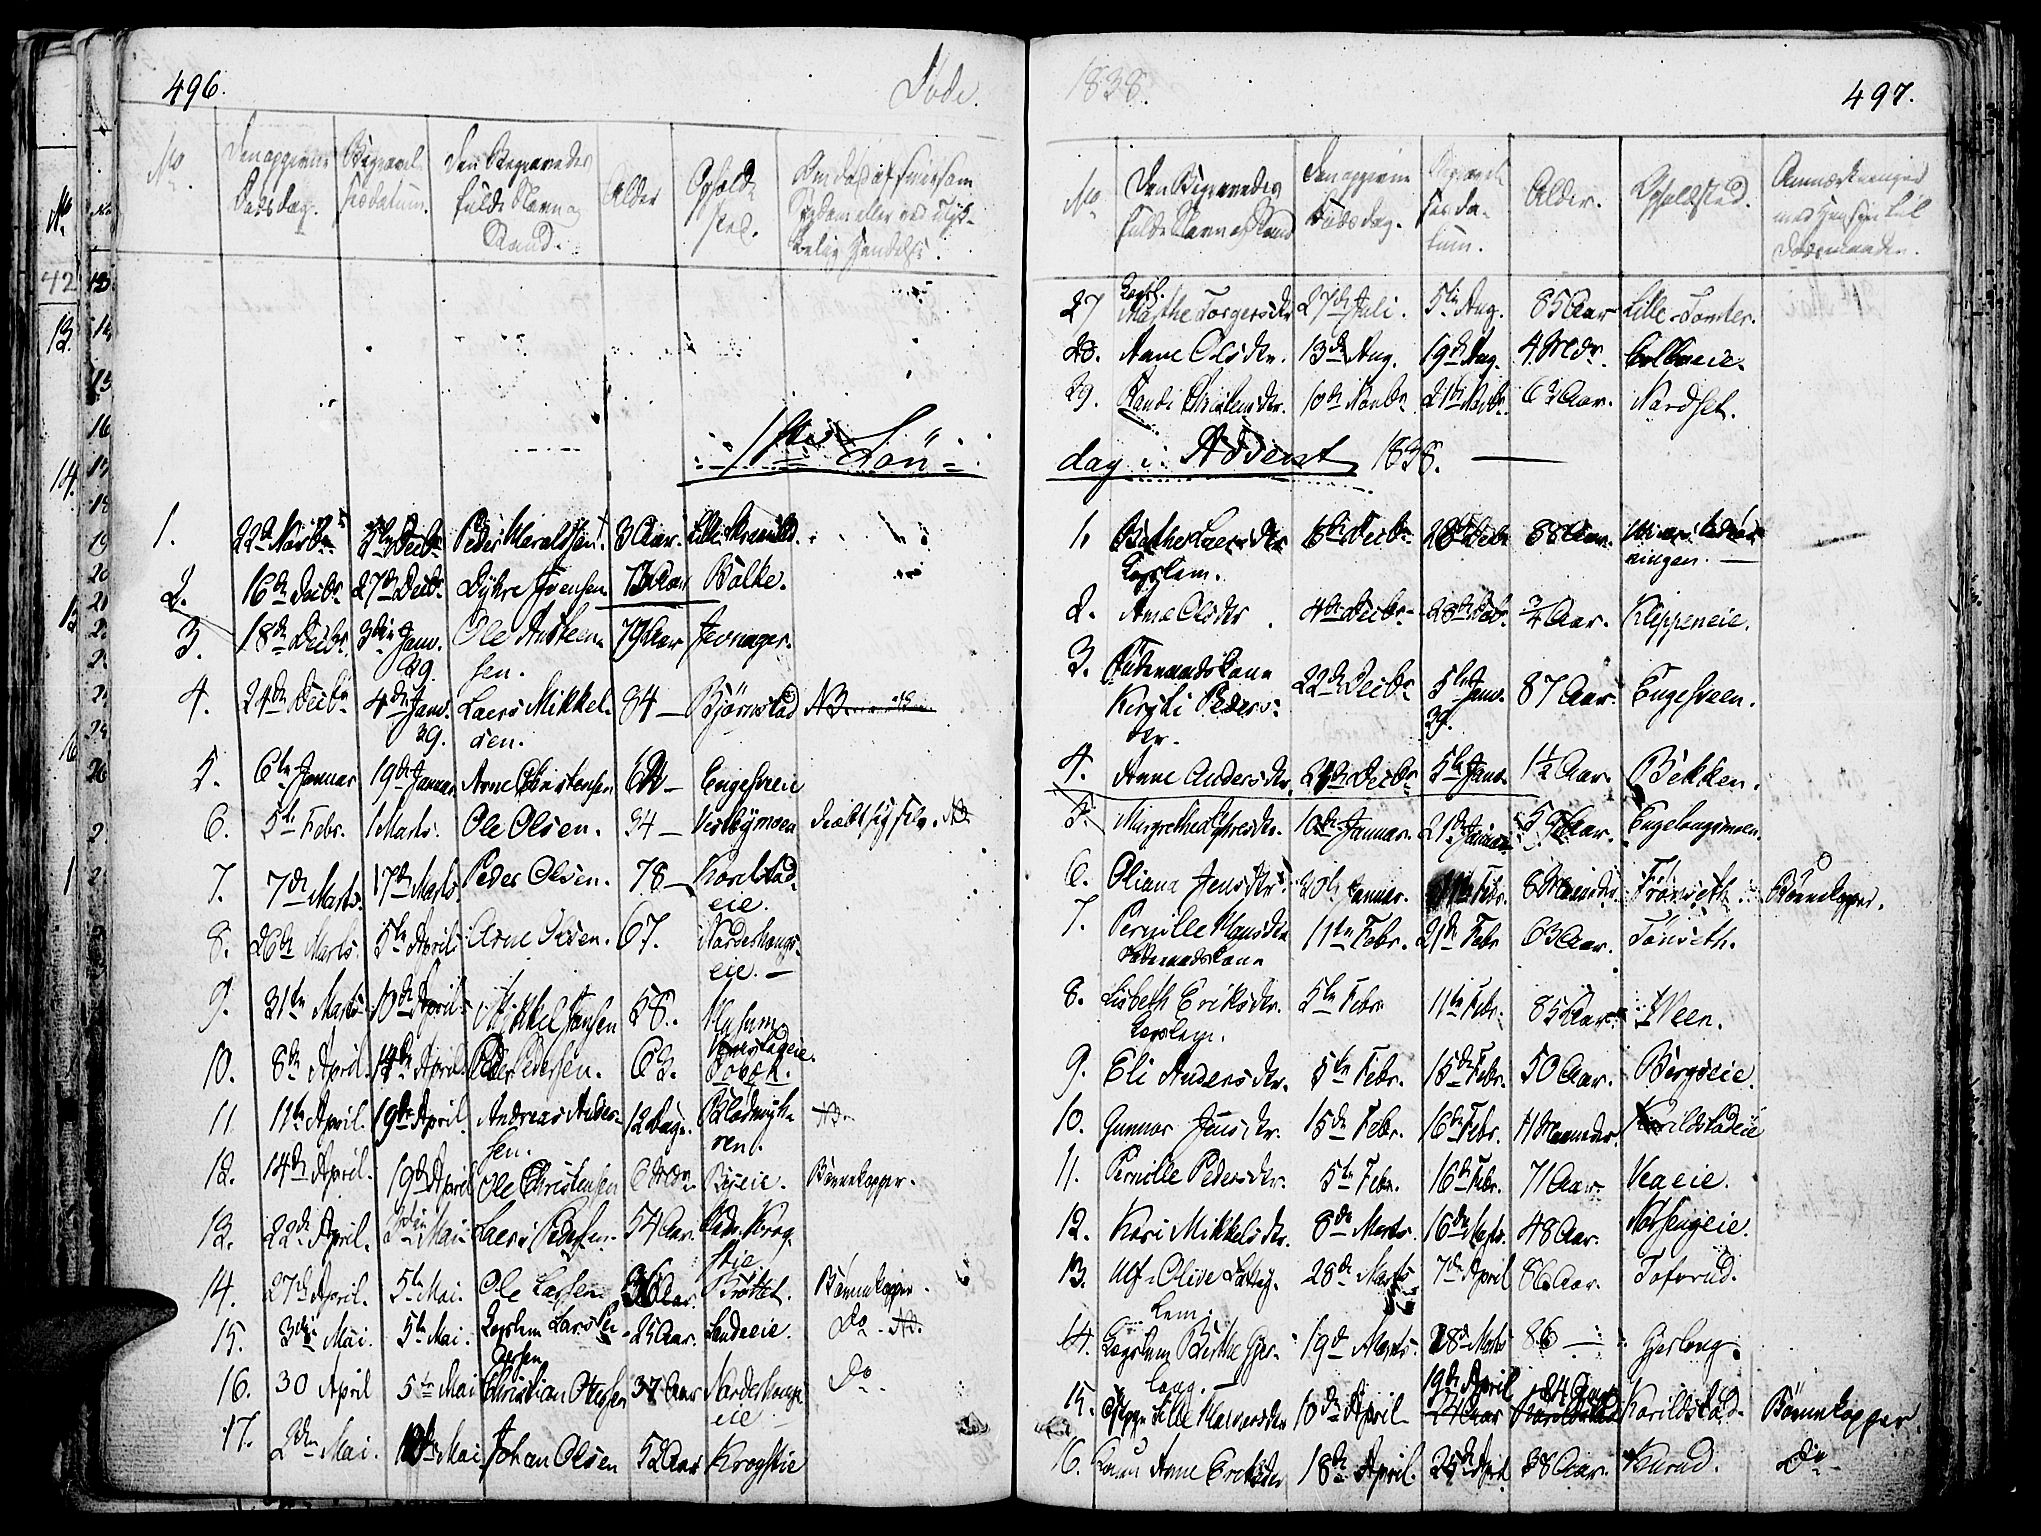 SAH, Løten prestekontor, K/Ka/L0006: Parish register (official) no. 6, 1832-1849, p. 496-497